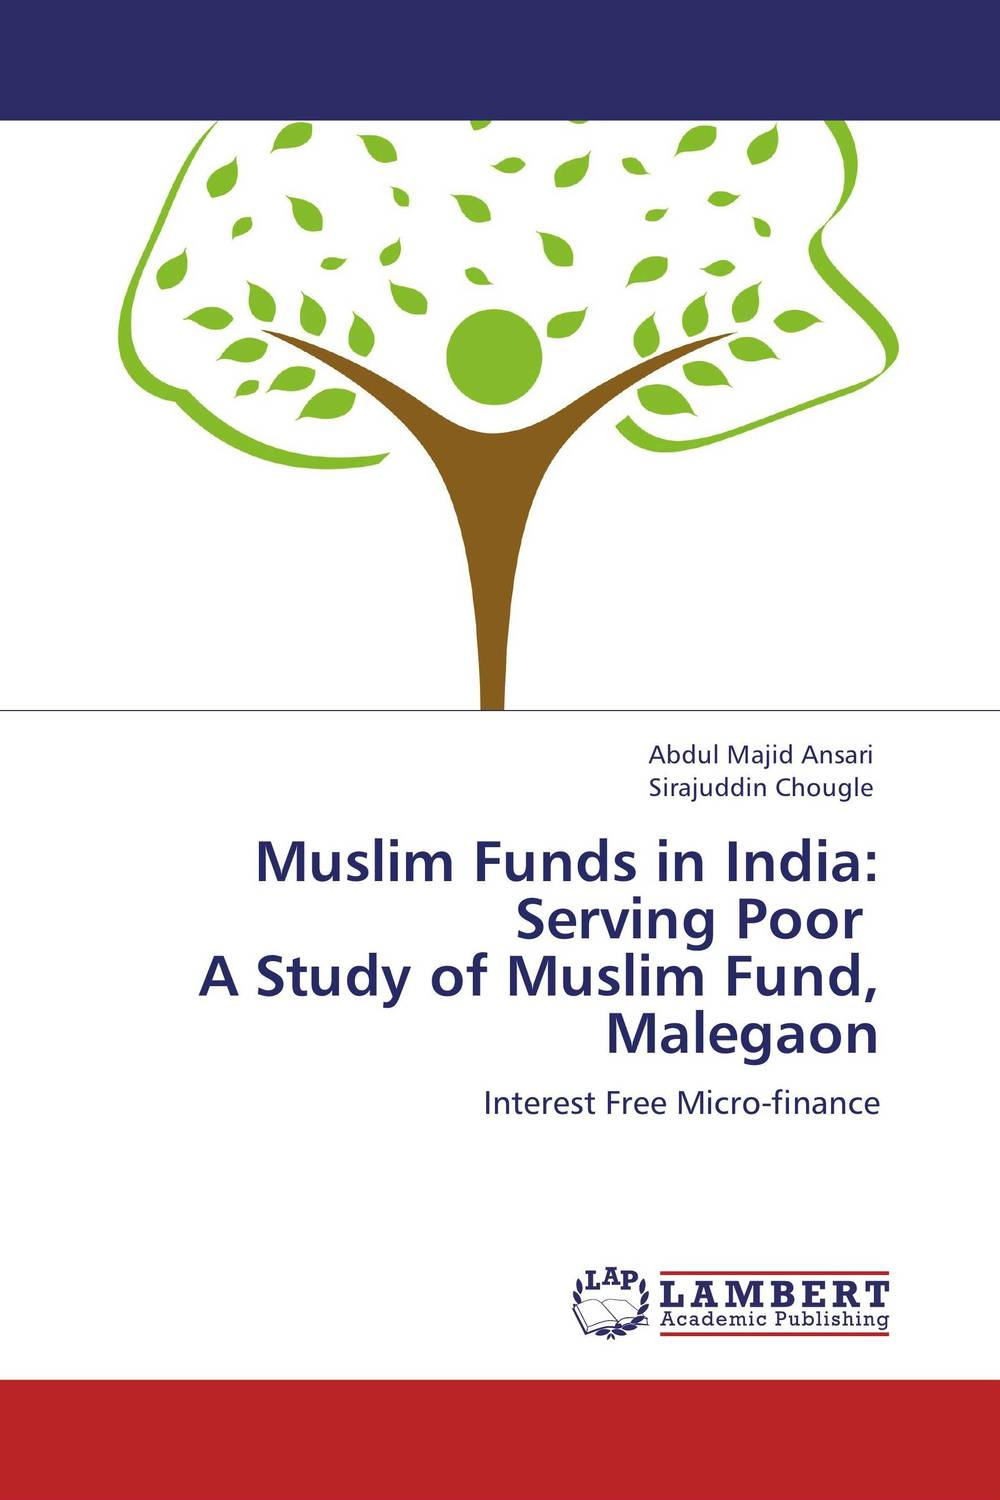 Muslim Funds in India: Serving Poor   A Study of Muslim Fund, Malegaon